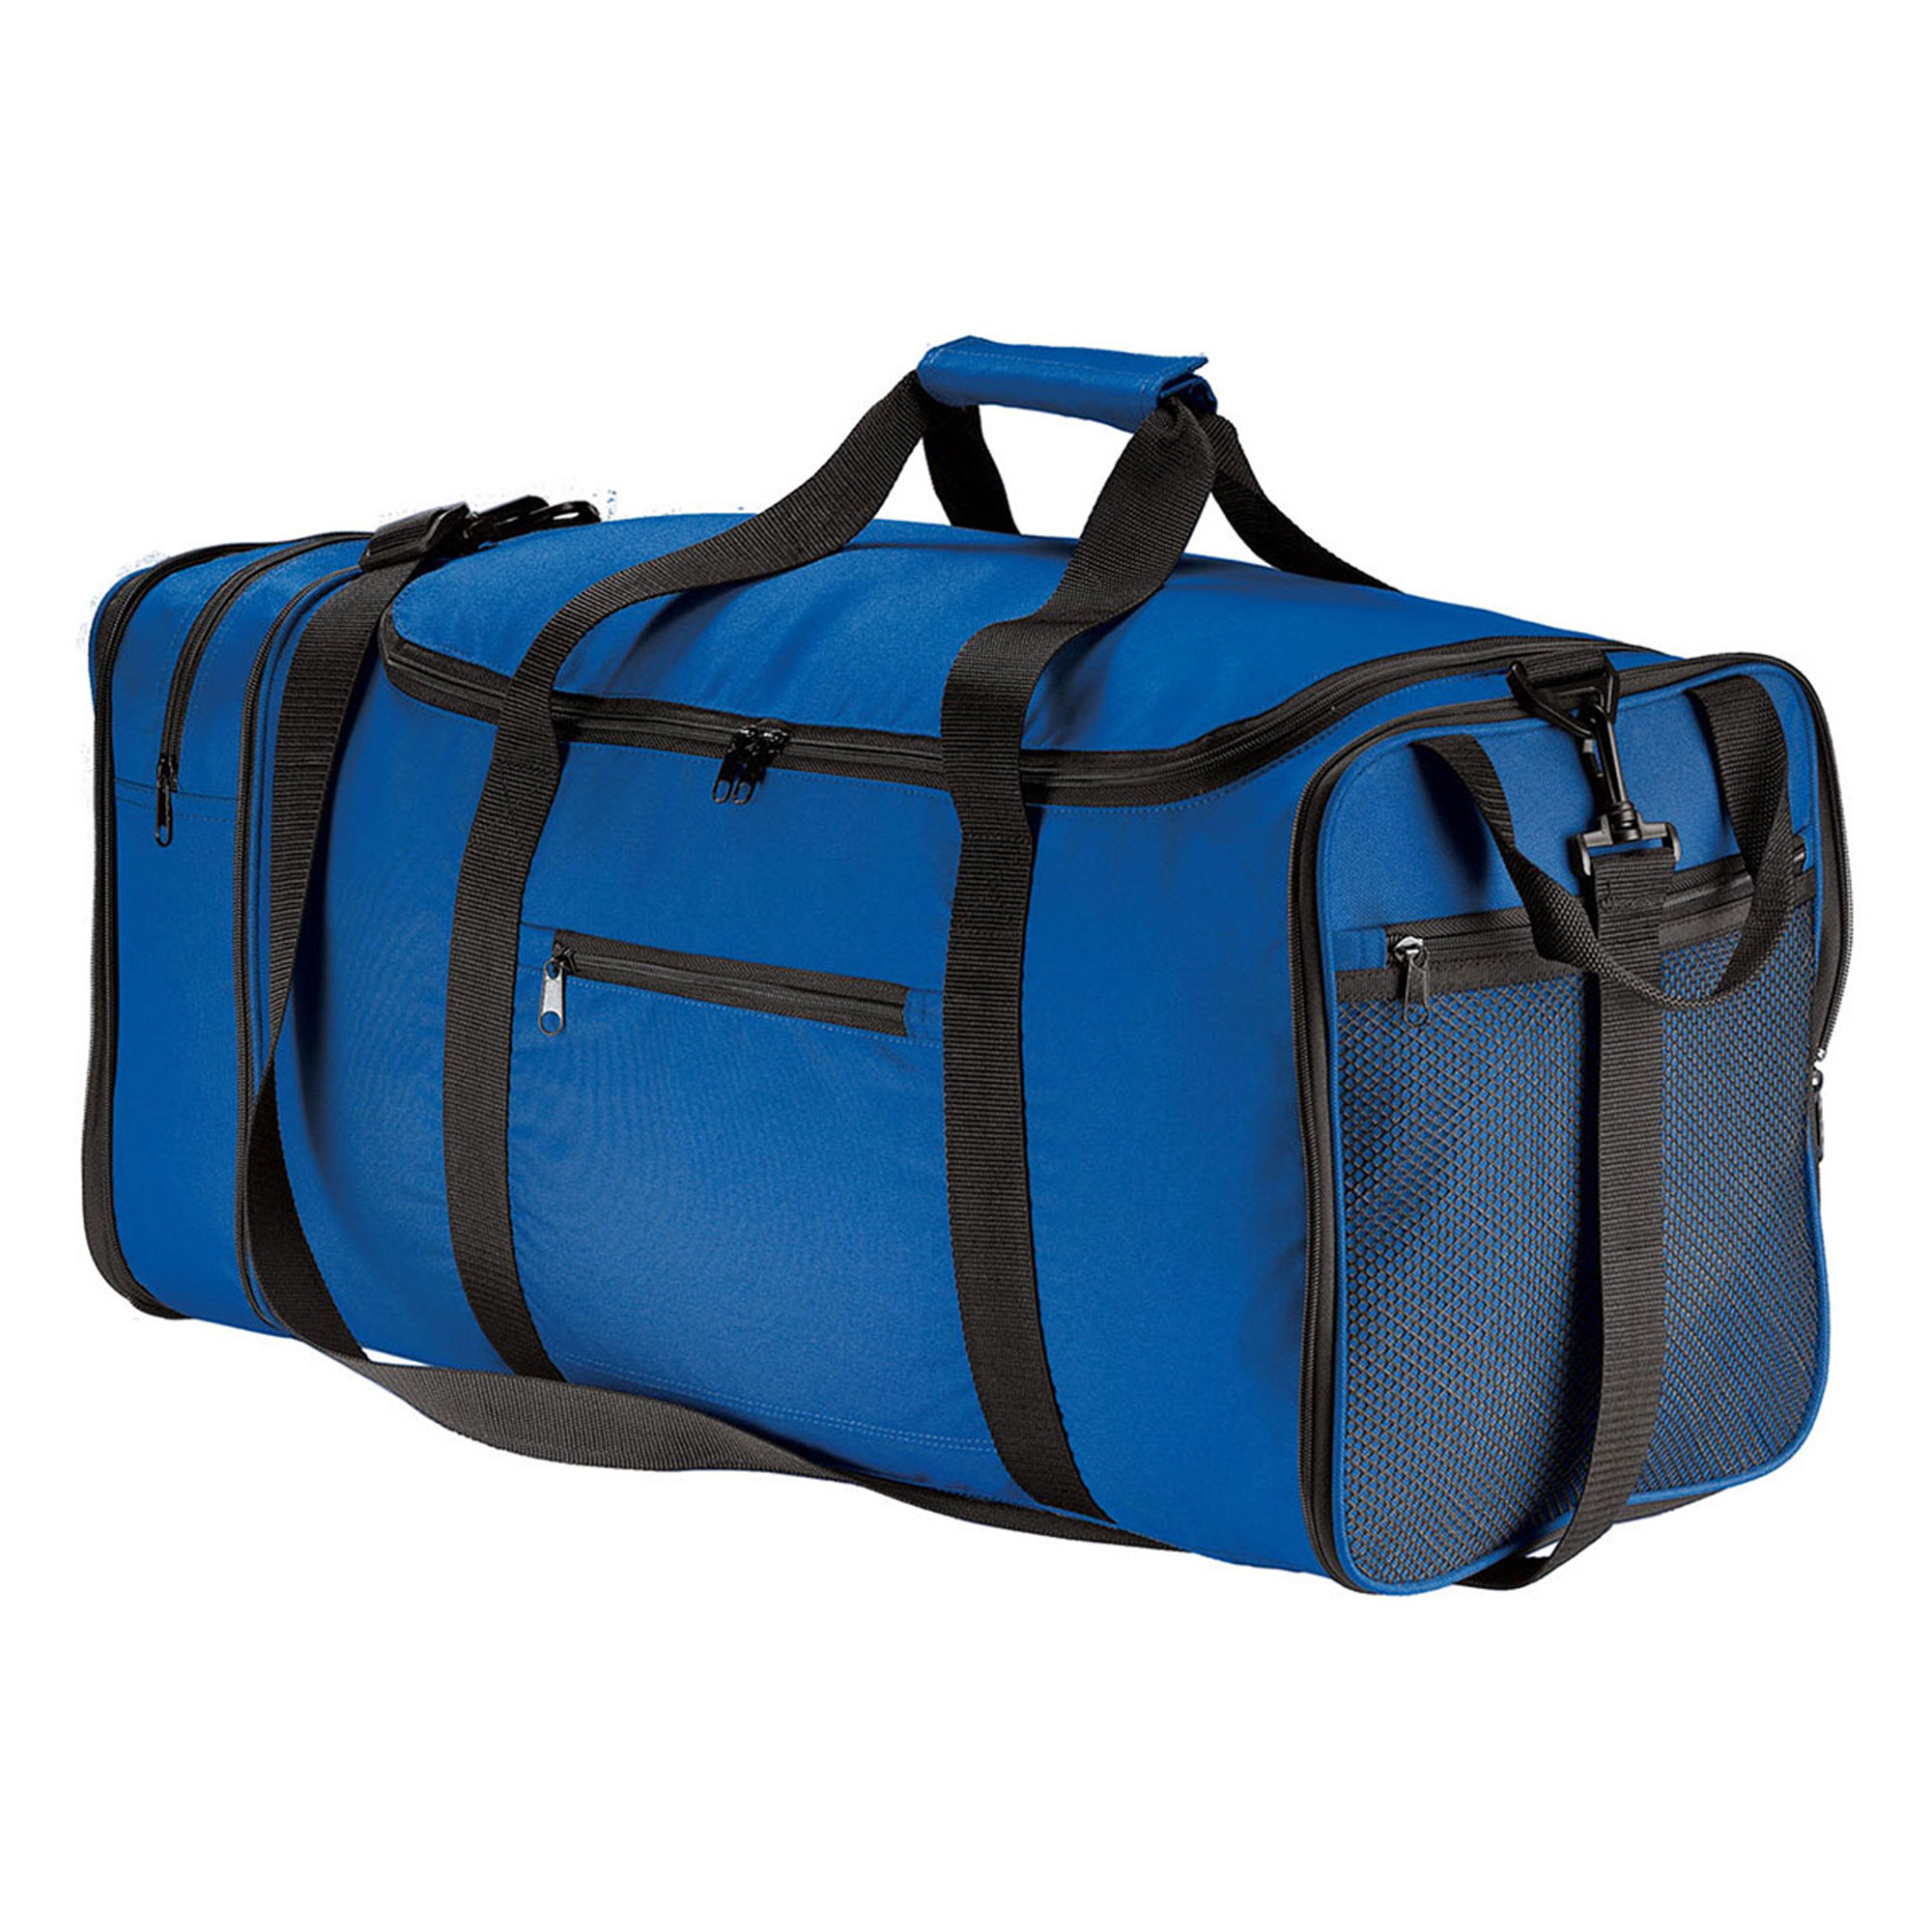 Port Authority Perfect Packable Stylish Travel Duffel Bag